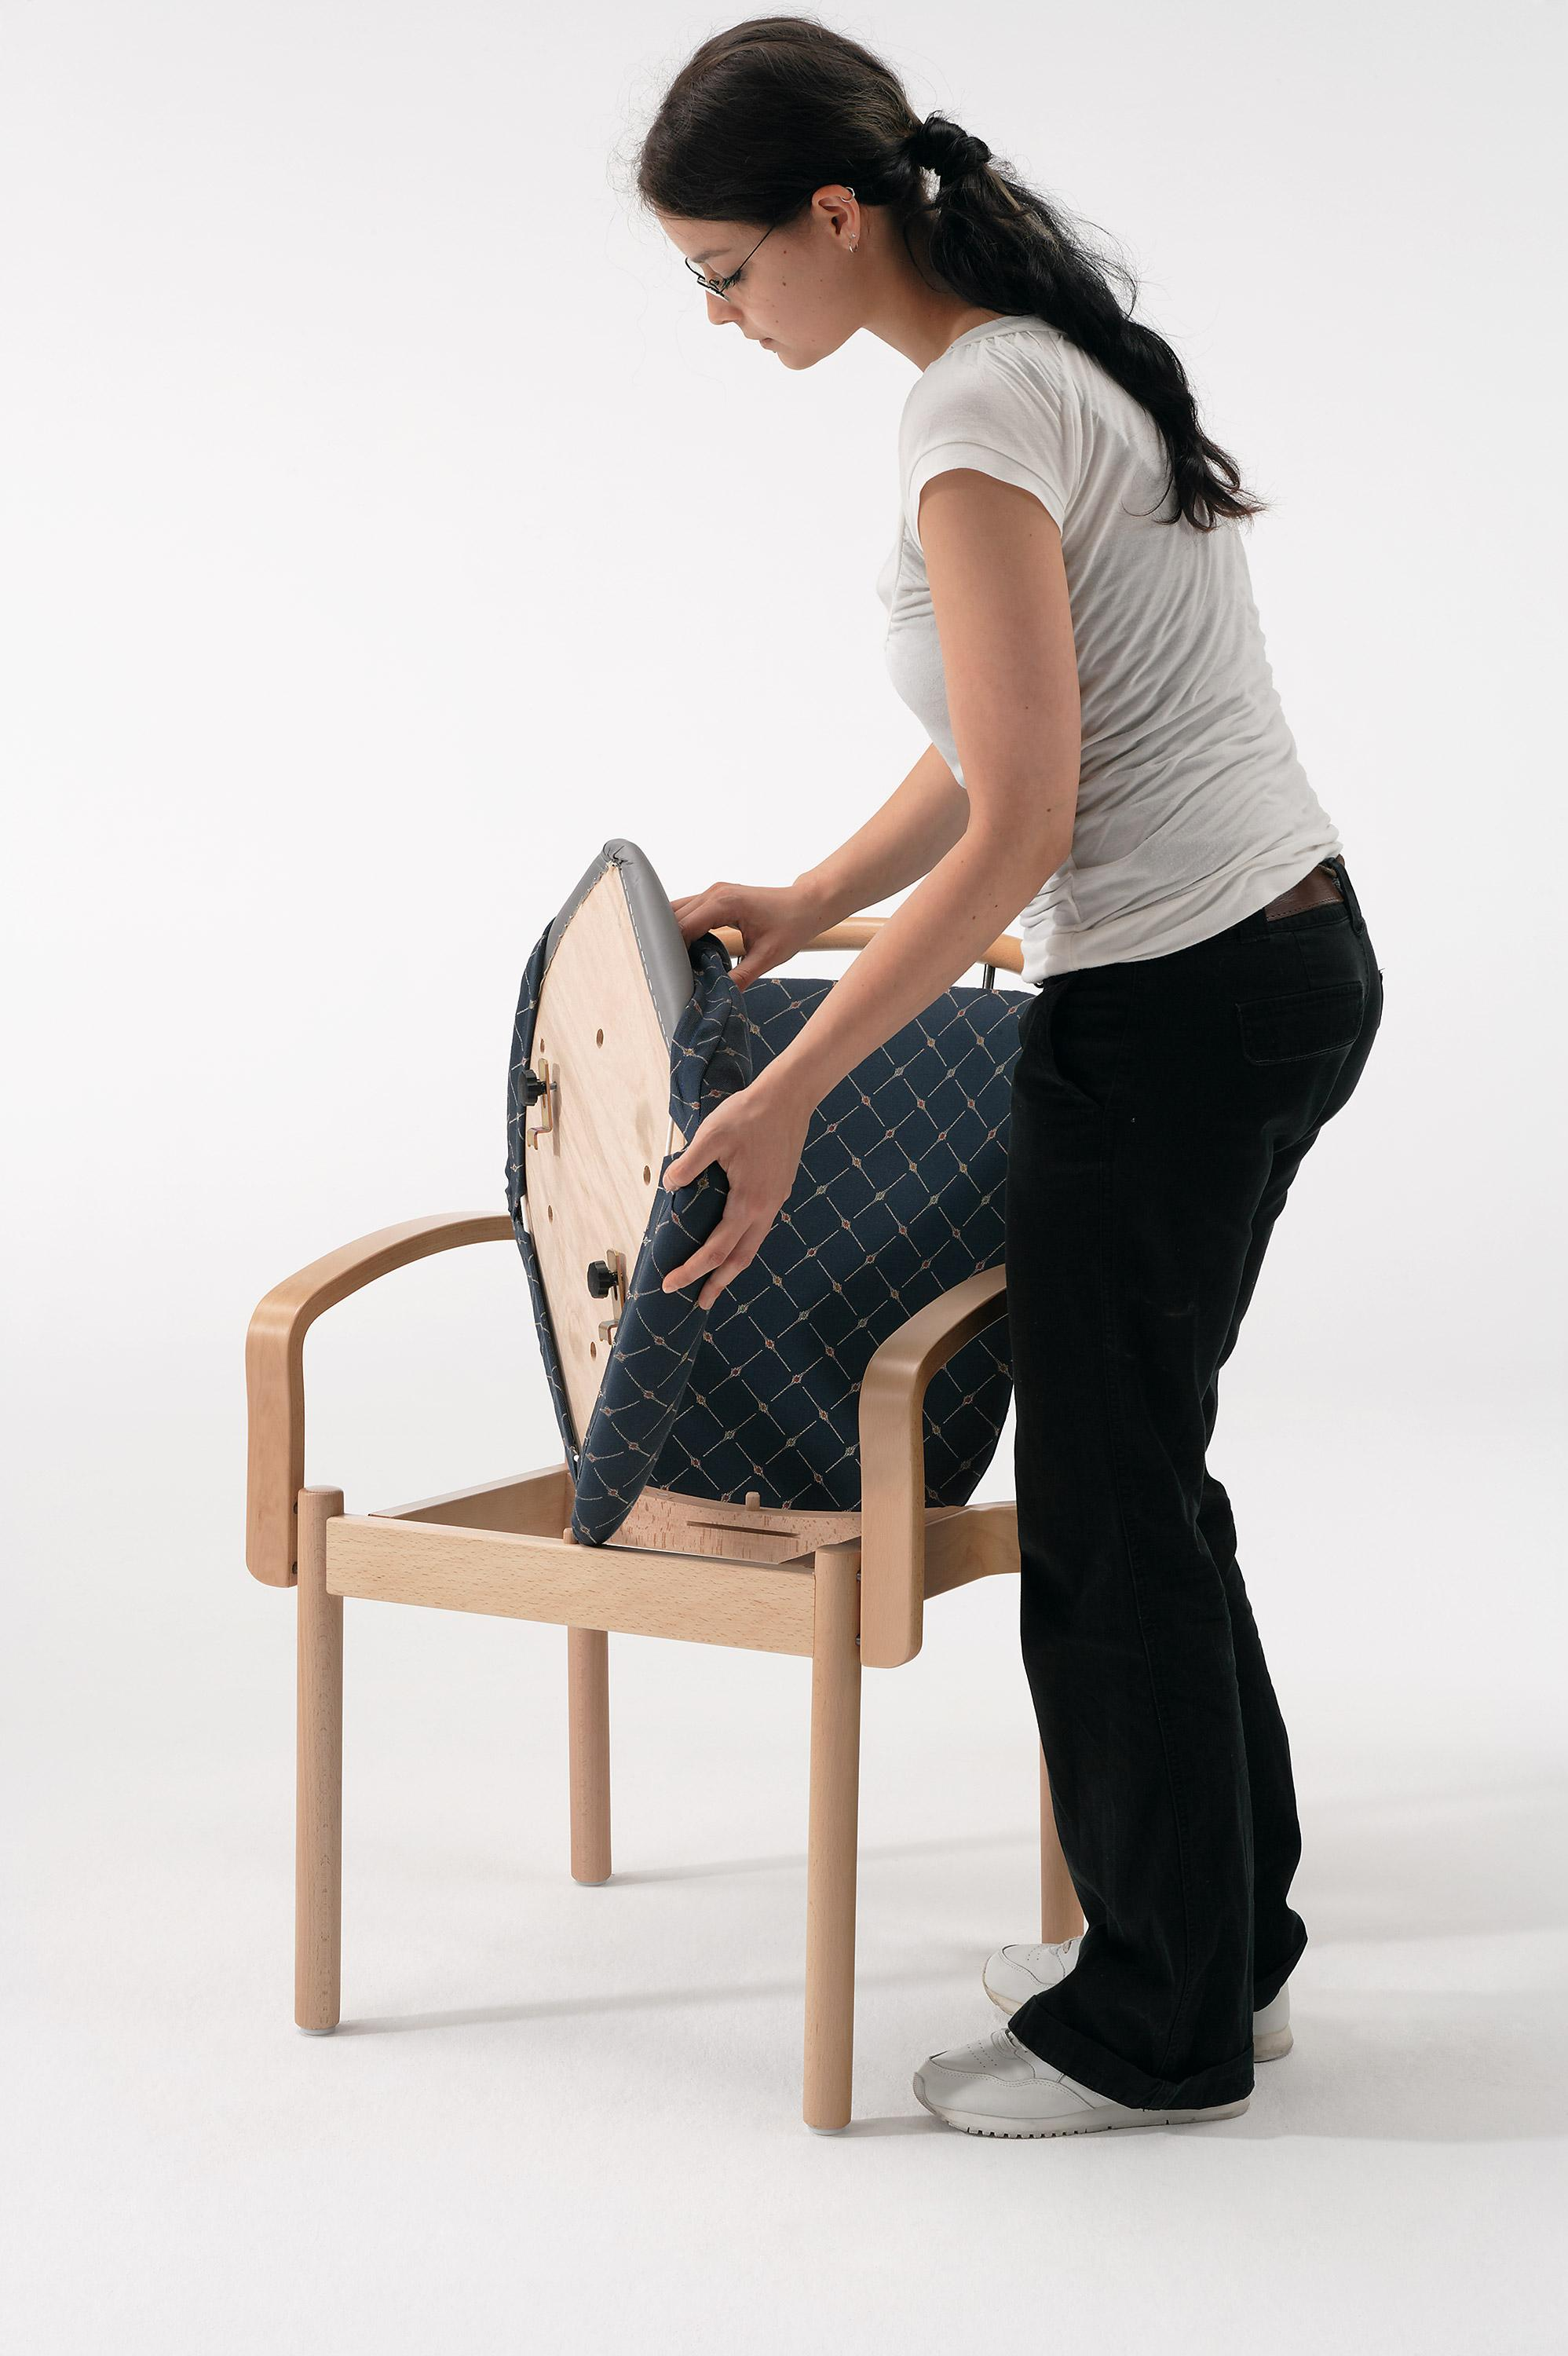 The Optimo chair with removable seat